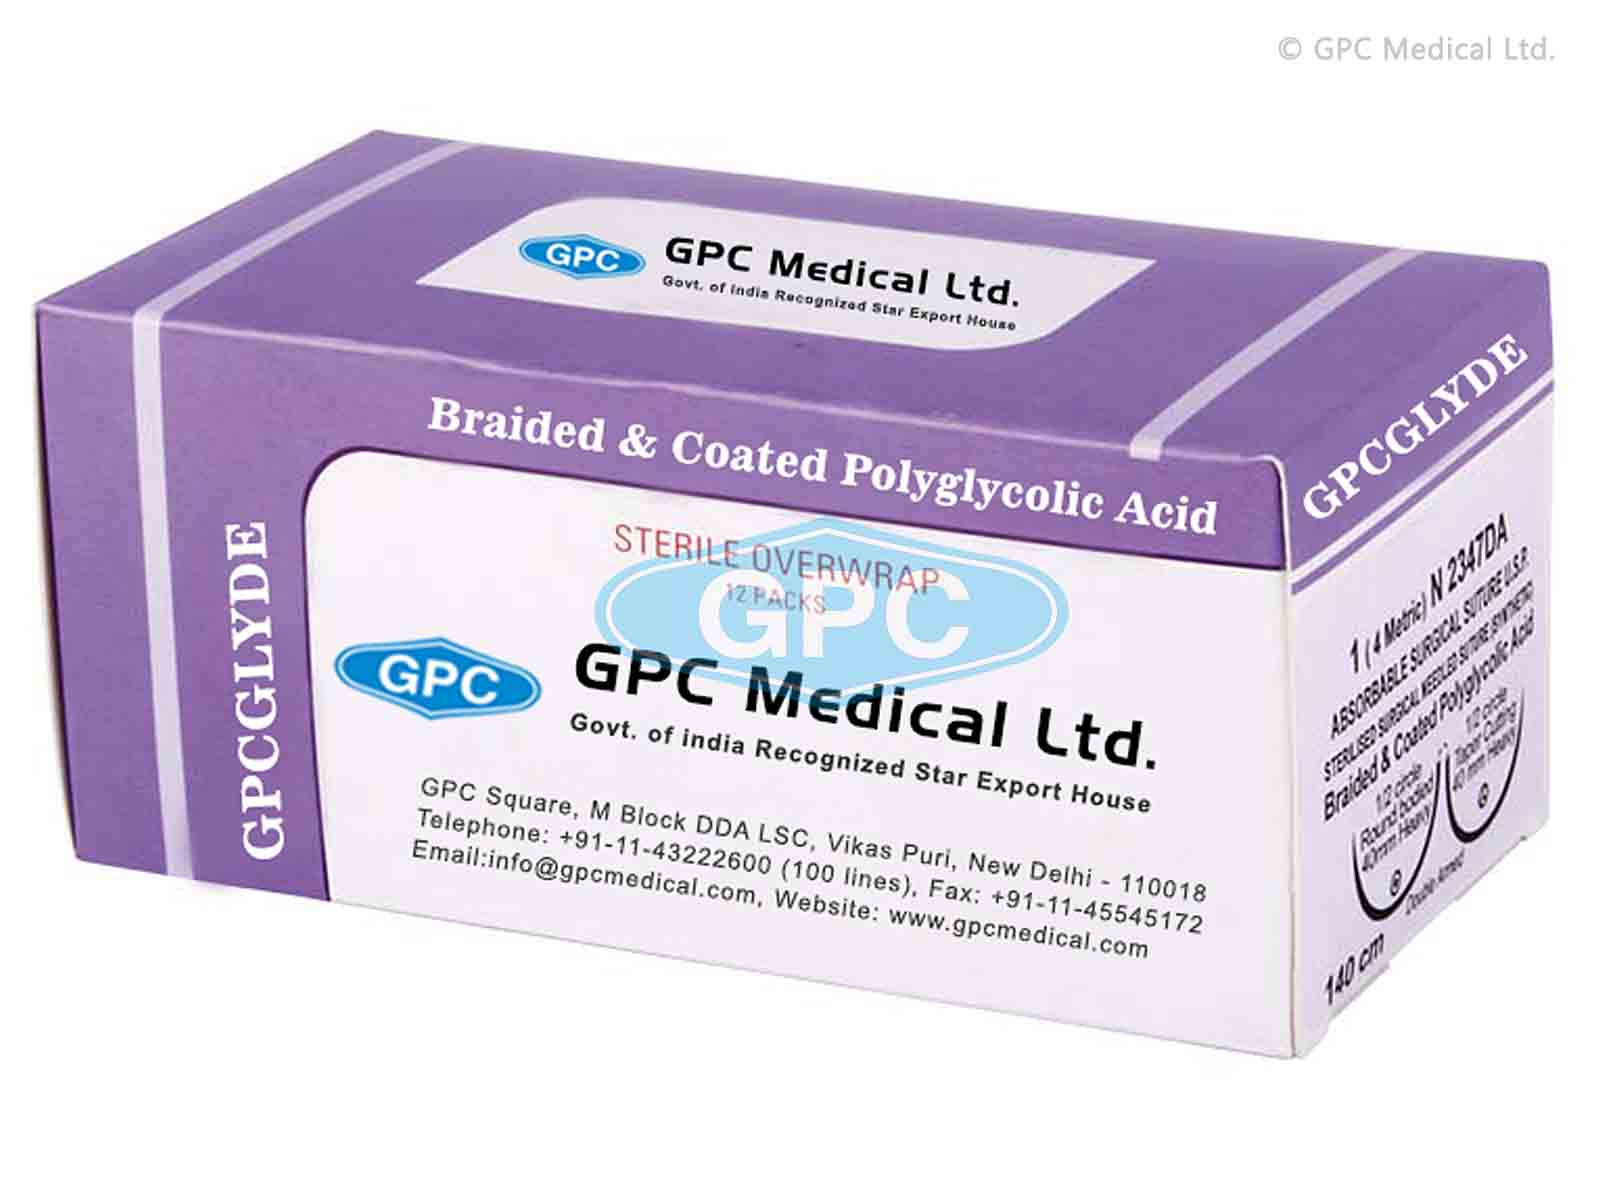 GPCGLYDE - Braided & Coated Polyglycolic Acid